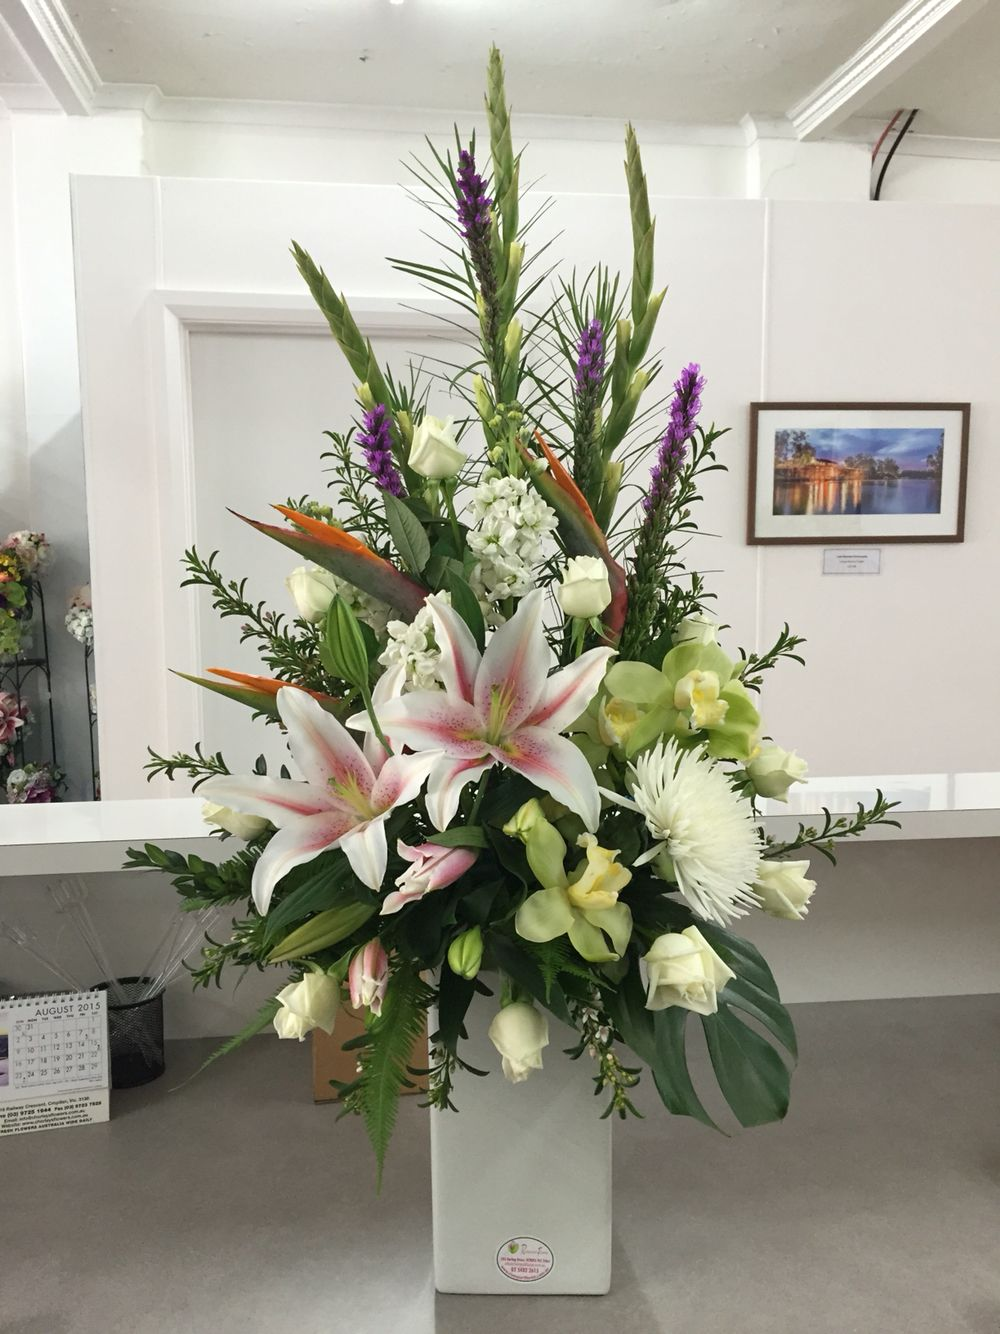 Large flower arrangement of gladiolus liatris cymbidium orchids large flower arrangement of gladiolus liatris cymbidium orchids lilies disbud chrysanthemum and izmirmasajfo Image collections